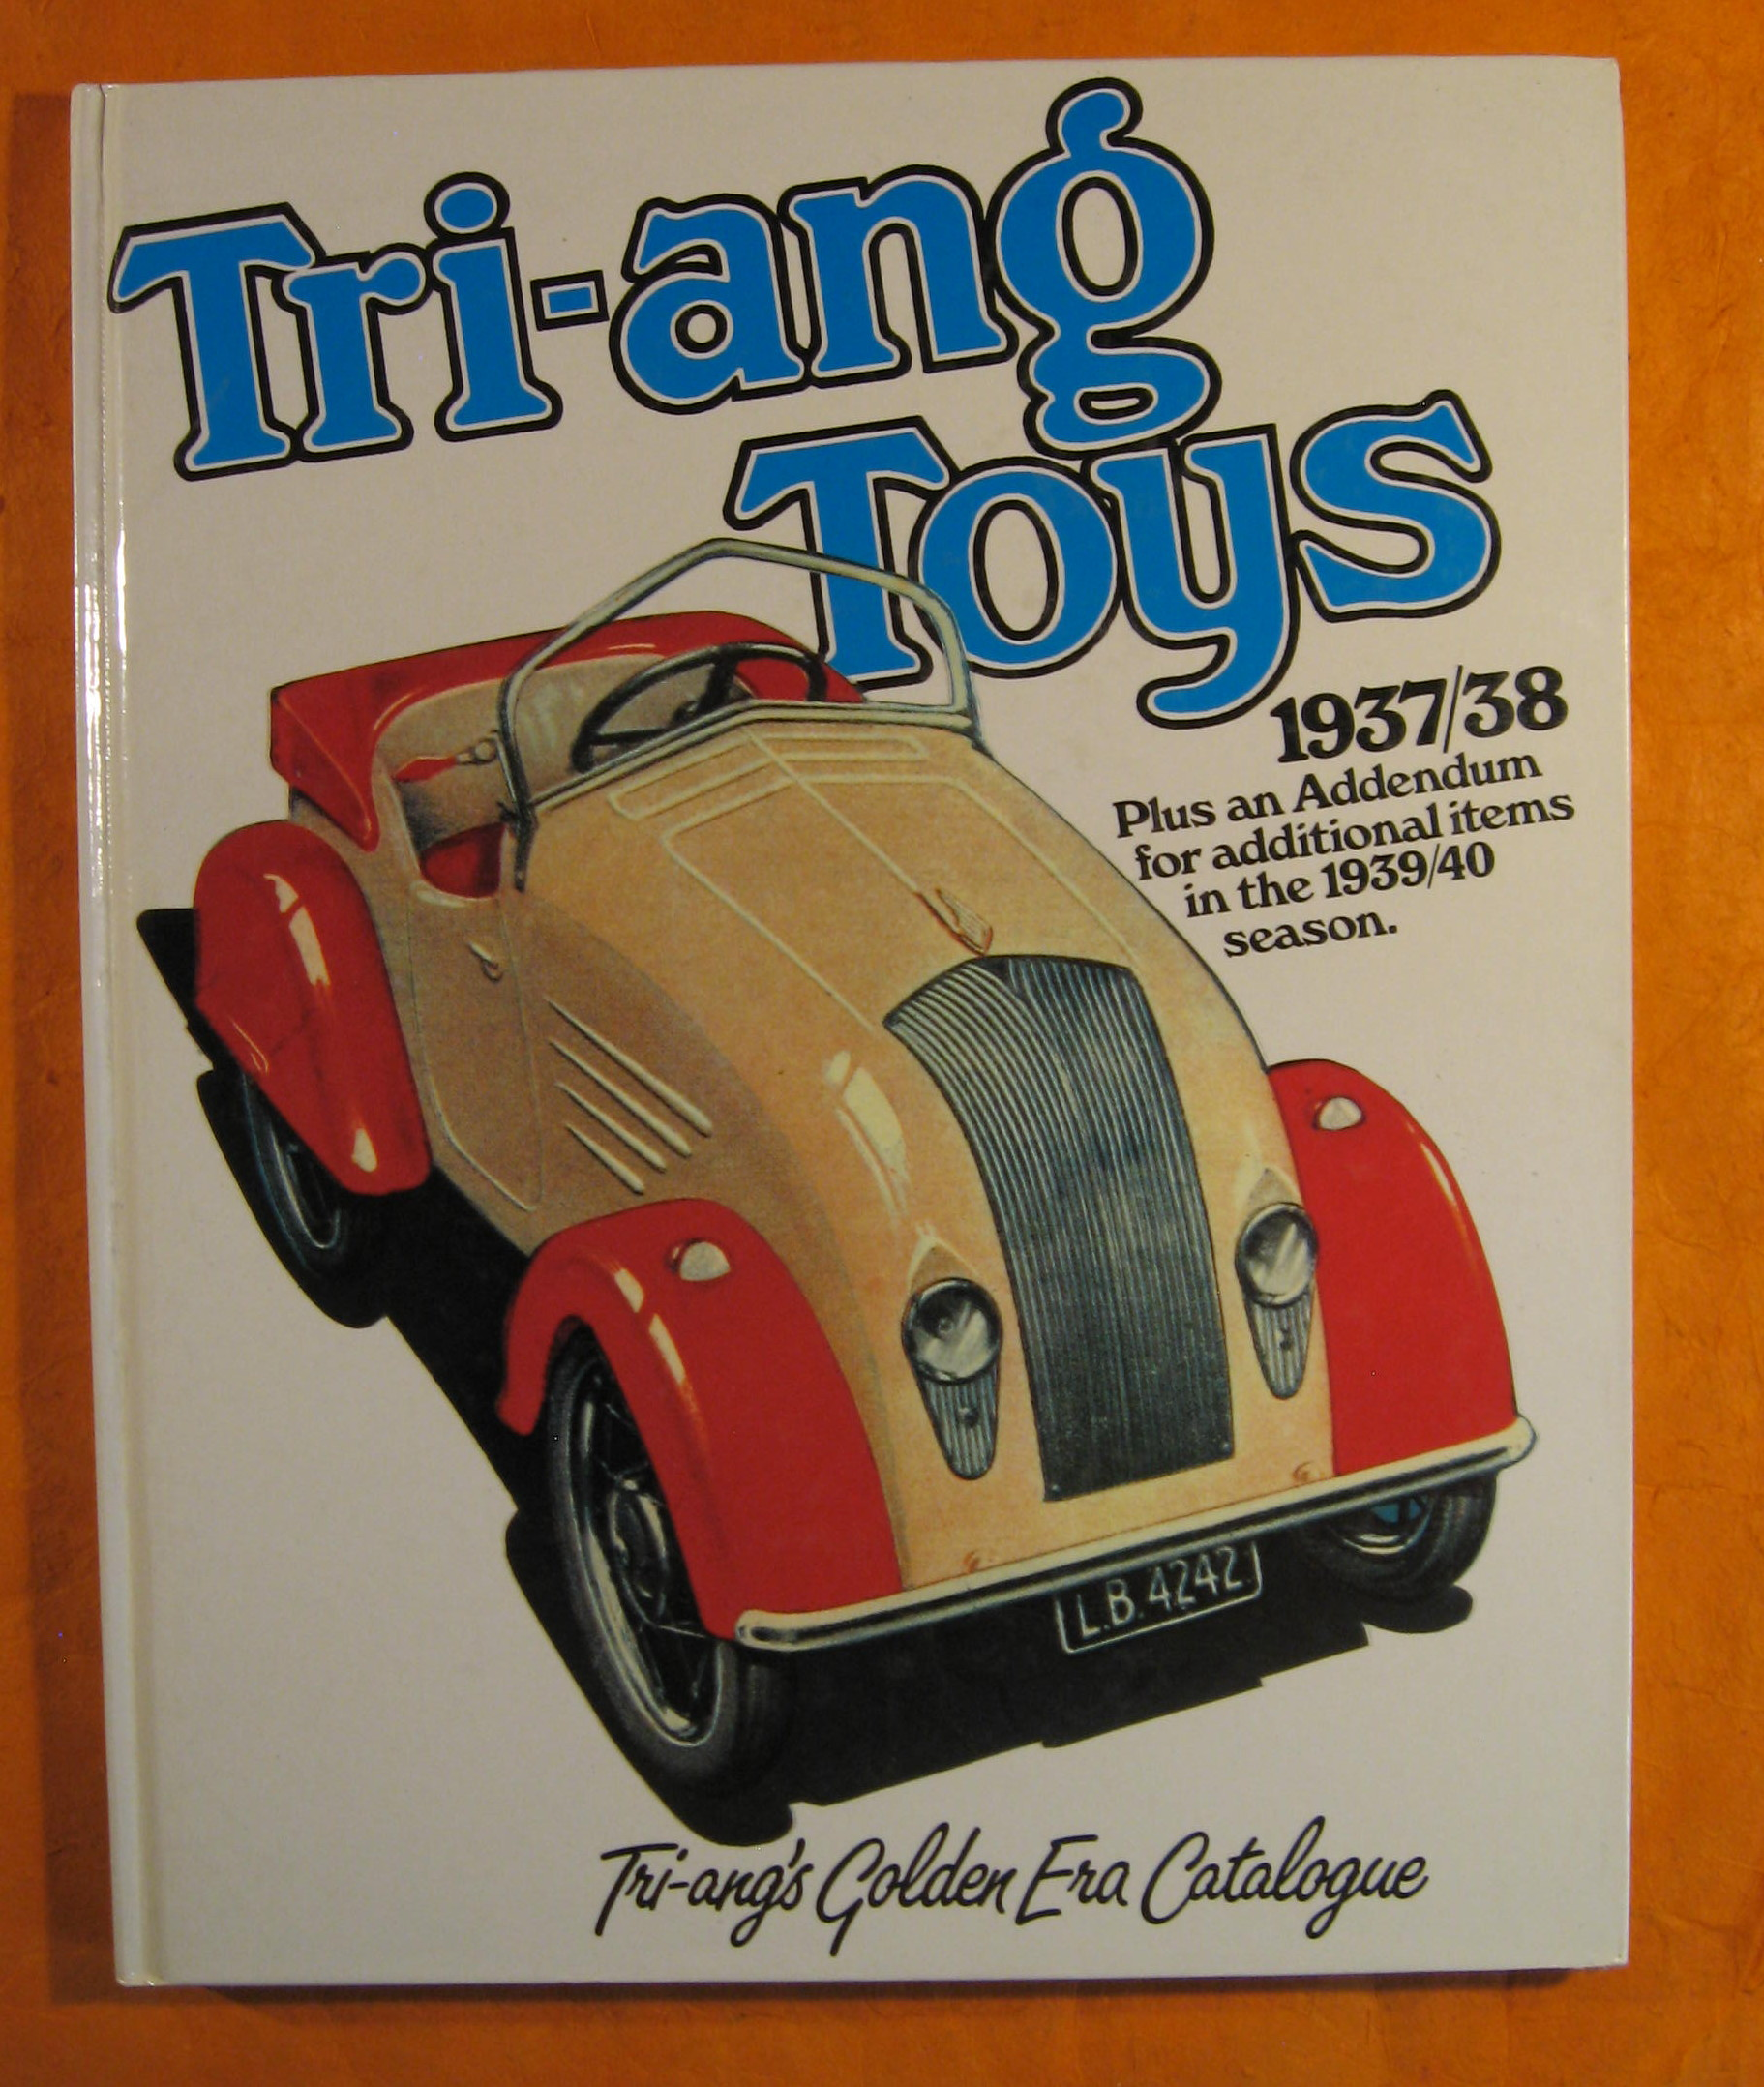 Image for Tri-ang Toys 1937-38 Plus an Addendum for additional items in the 1939/40 season. Tri-ang's Golden Era Catalogue